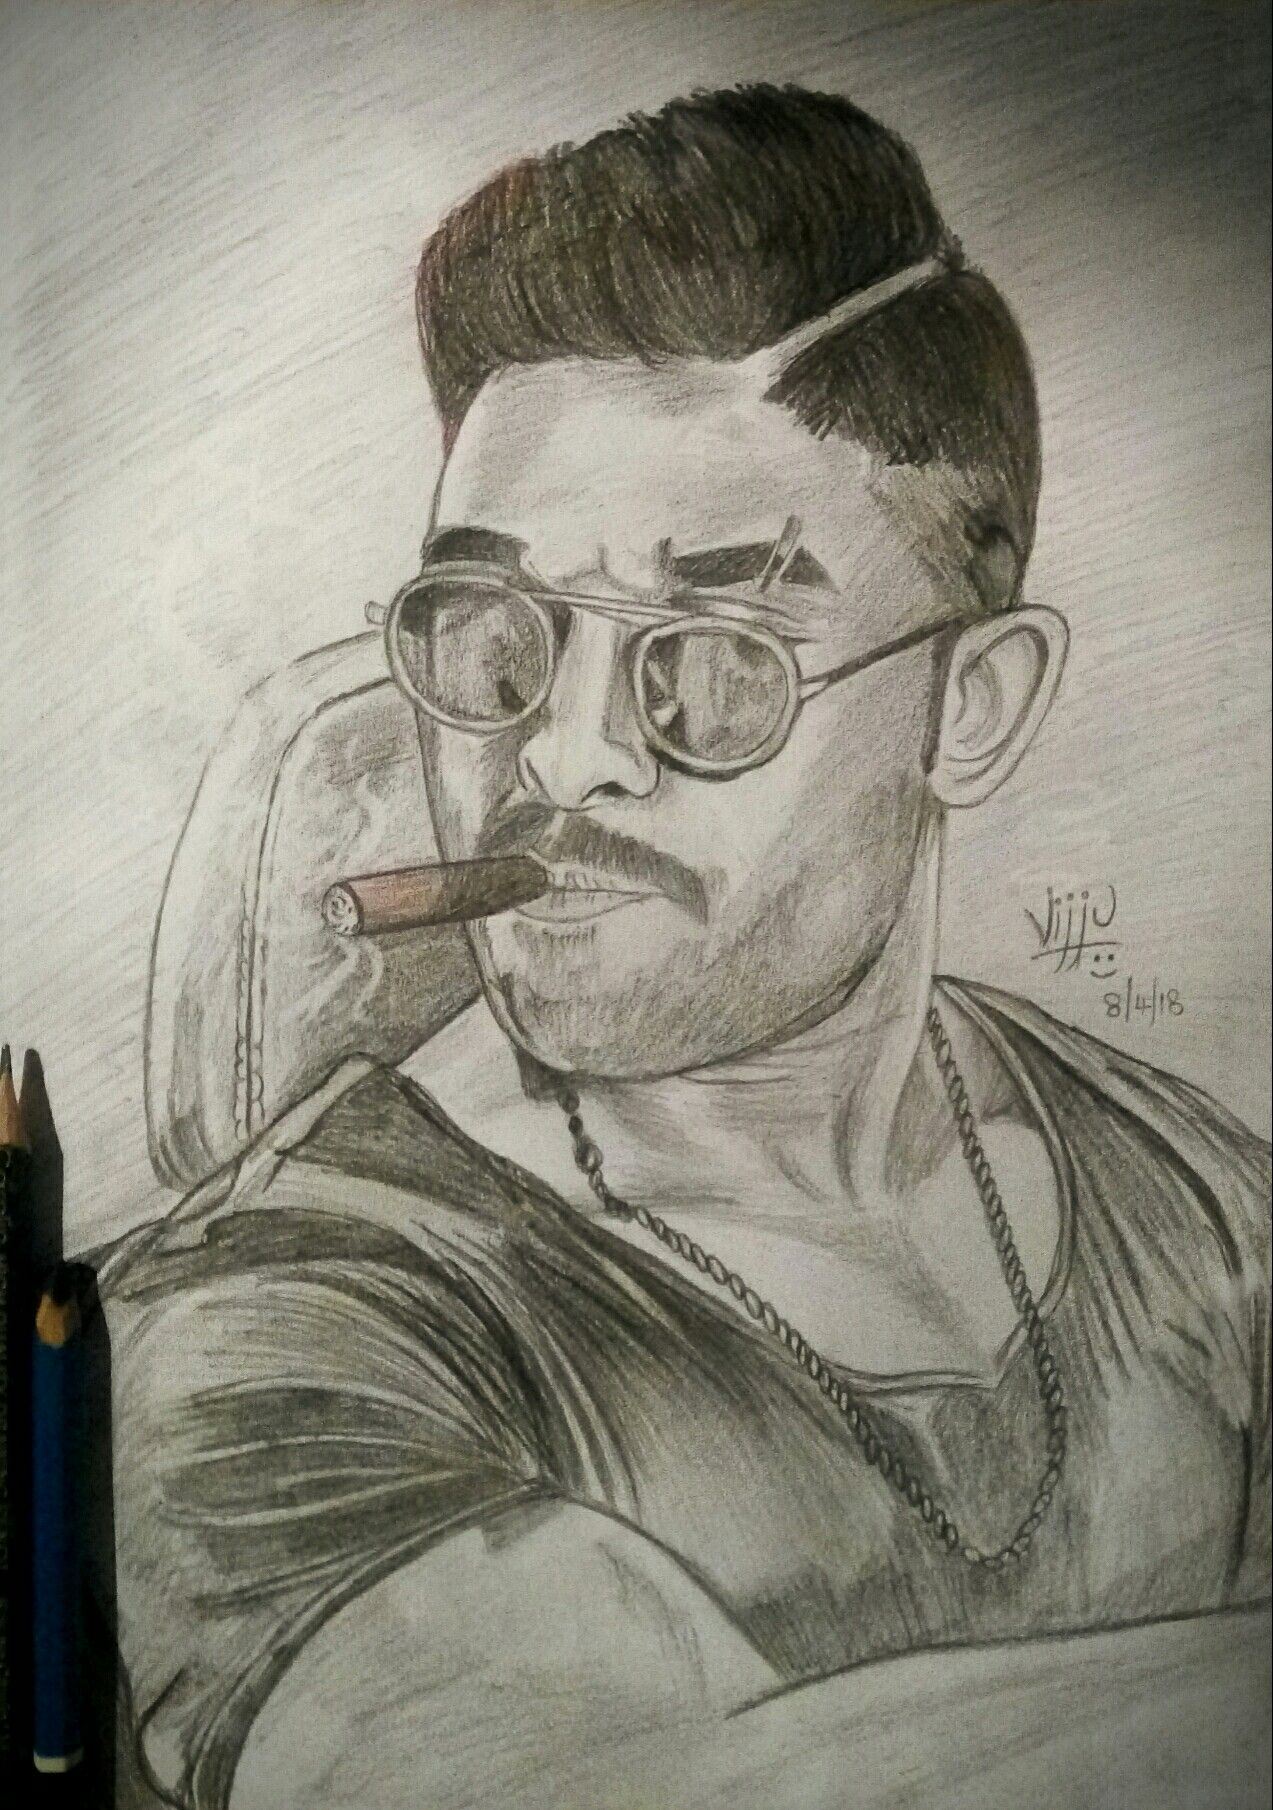 Allu Arjun Sketch Draw On Photos Pencil Sketch Portrait Beautiful Pencil Sketches